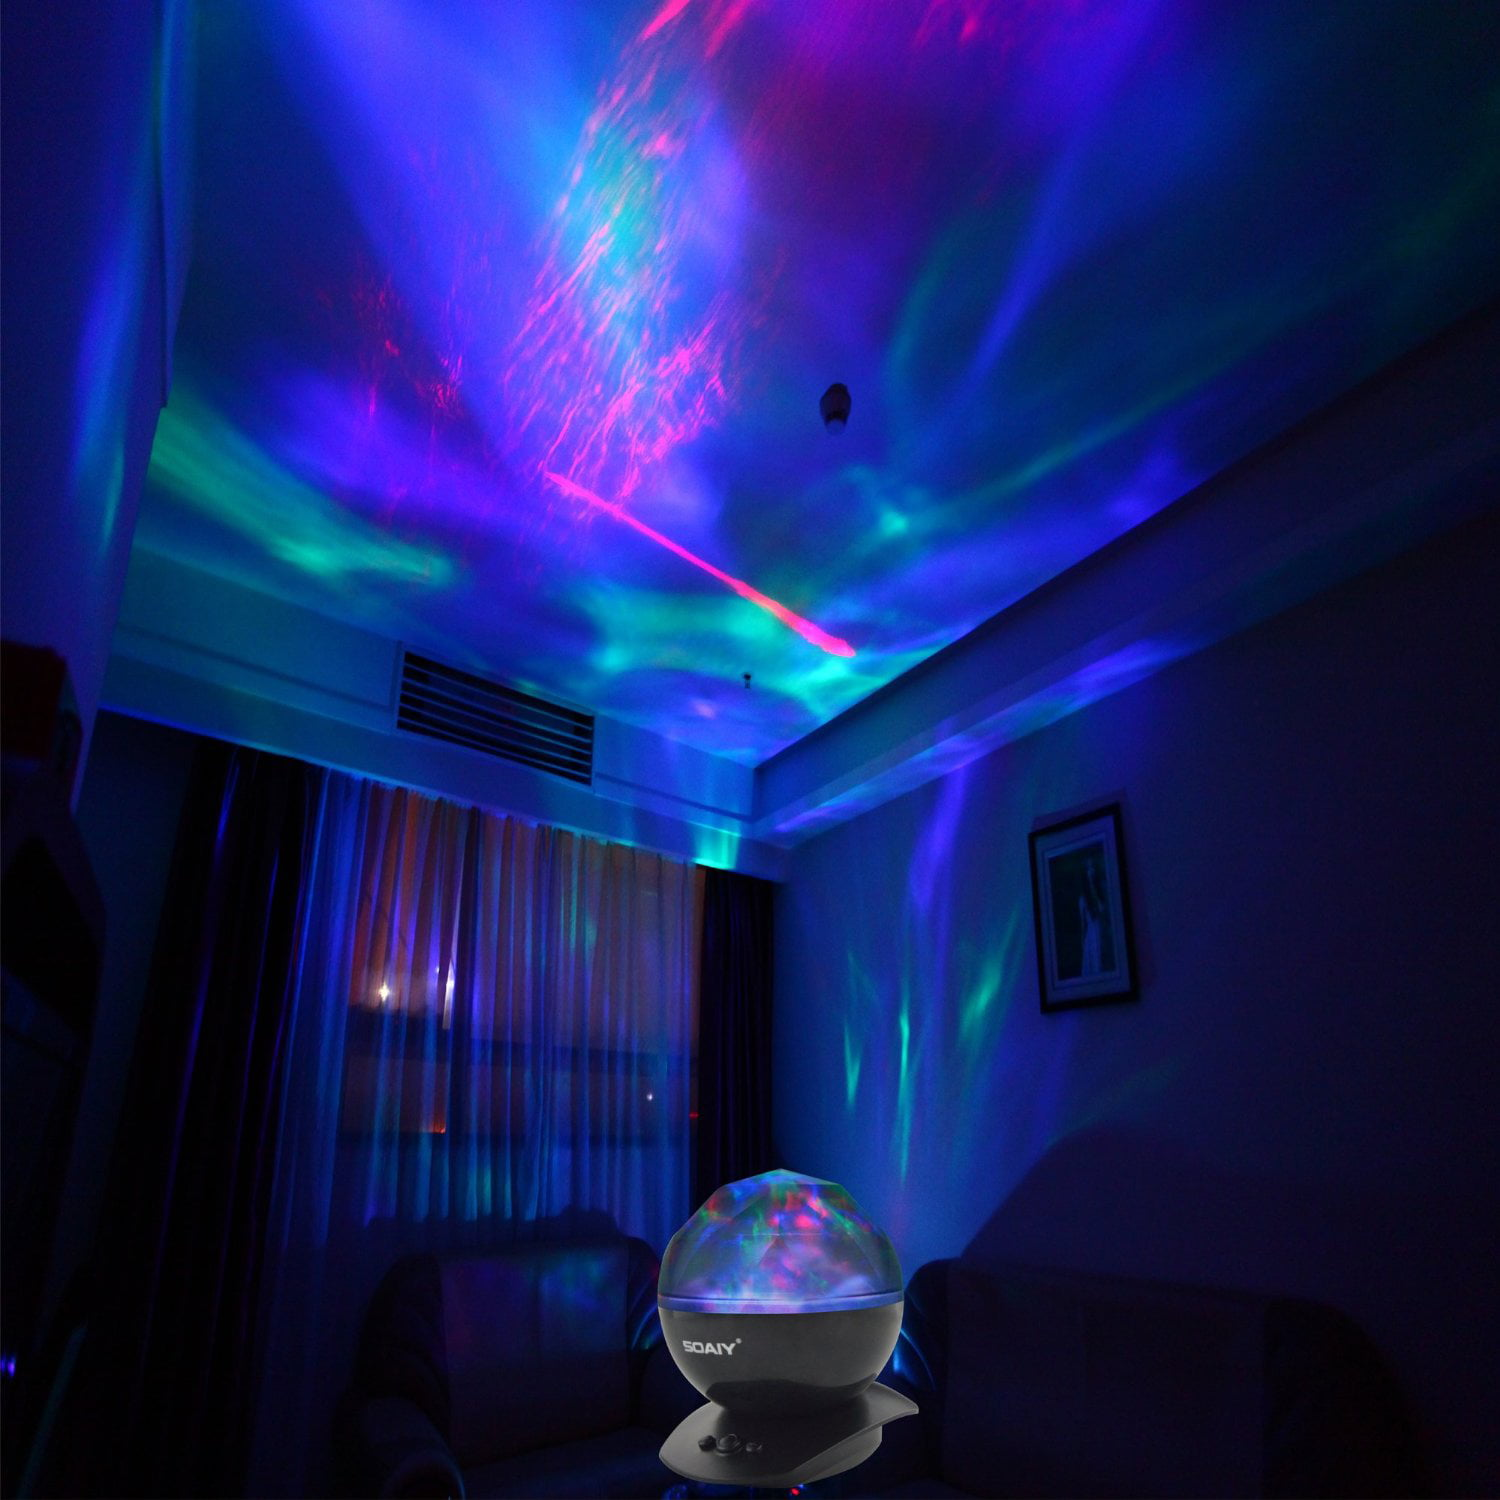 ... Aurora Projector LED Night Light Color Changing Lamp U003c/fontu003eRotation  With Timer Music Player For Kid Adult Room Bedroom Nursery Decor    Walmart.com